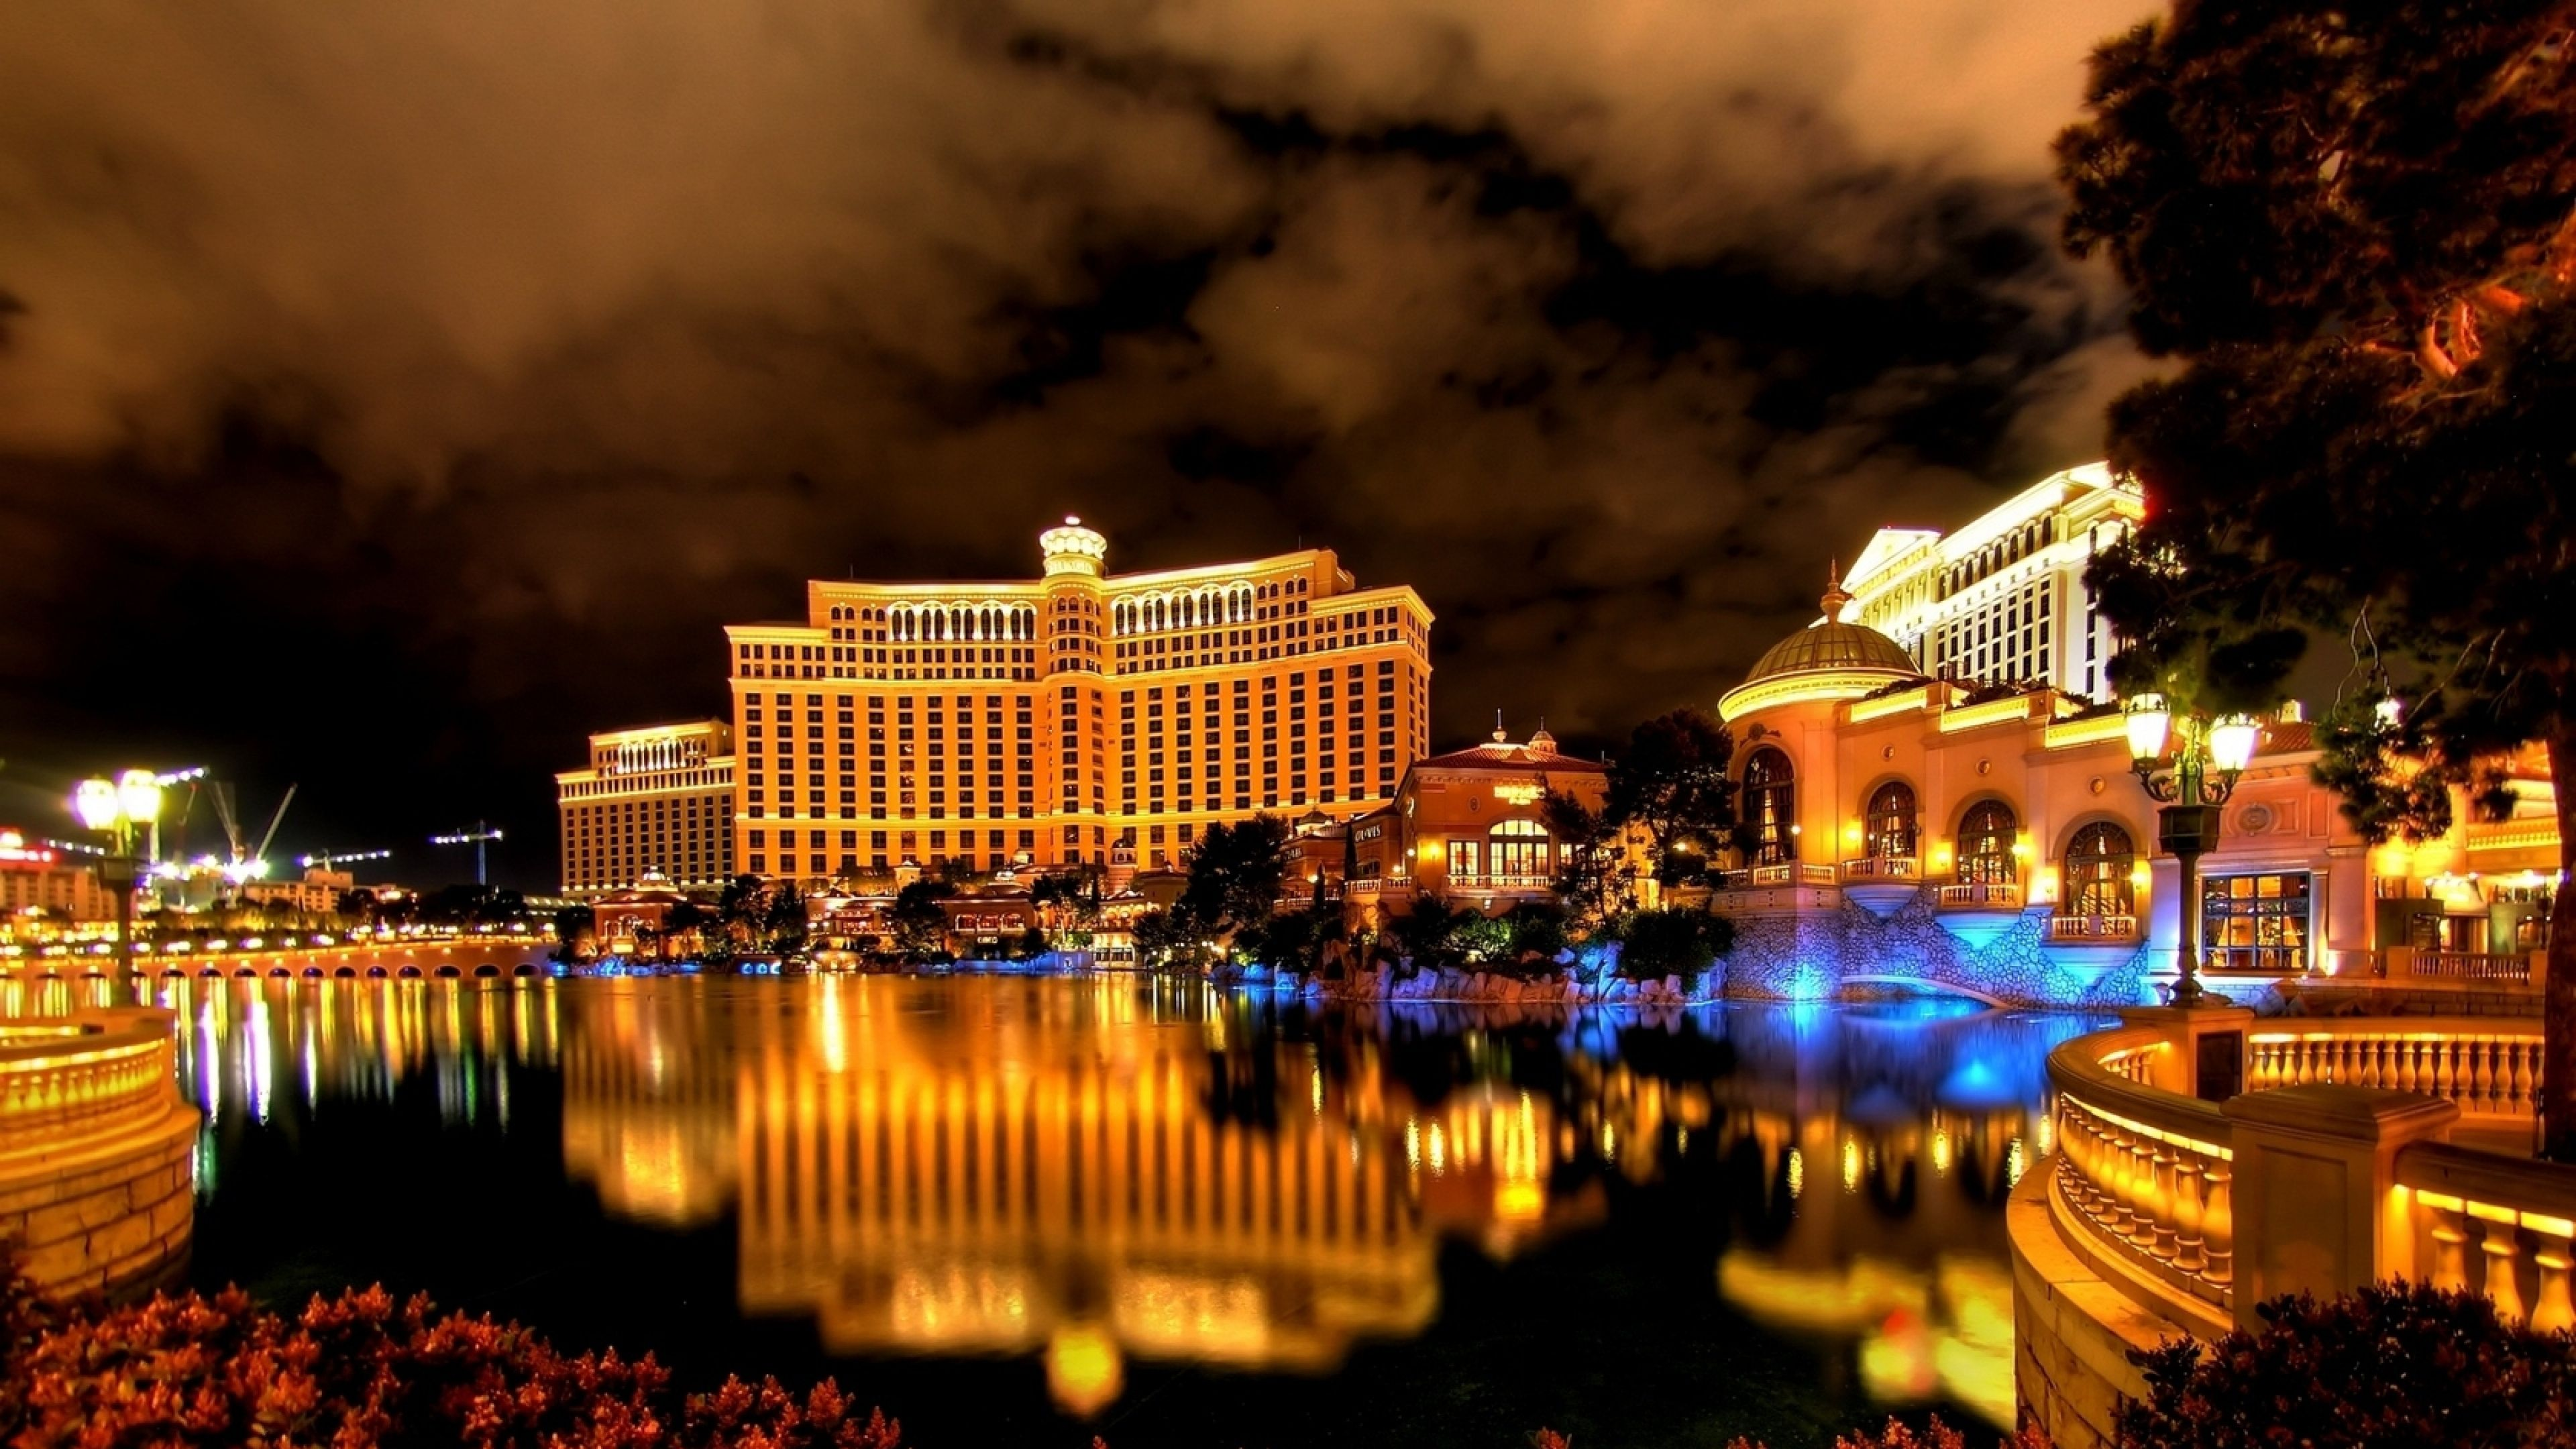 Las Vegas Wallpaper Android Apps on Google Play Лас